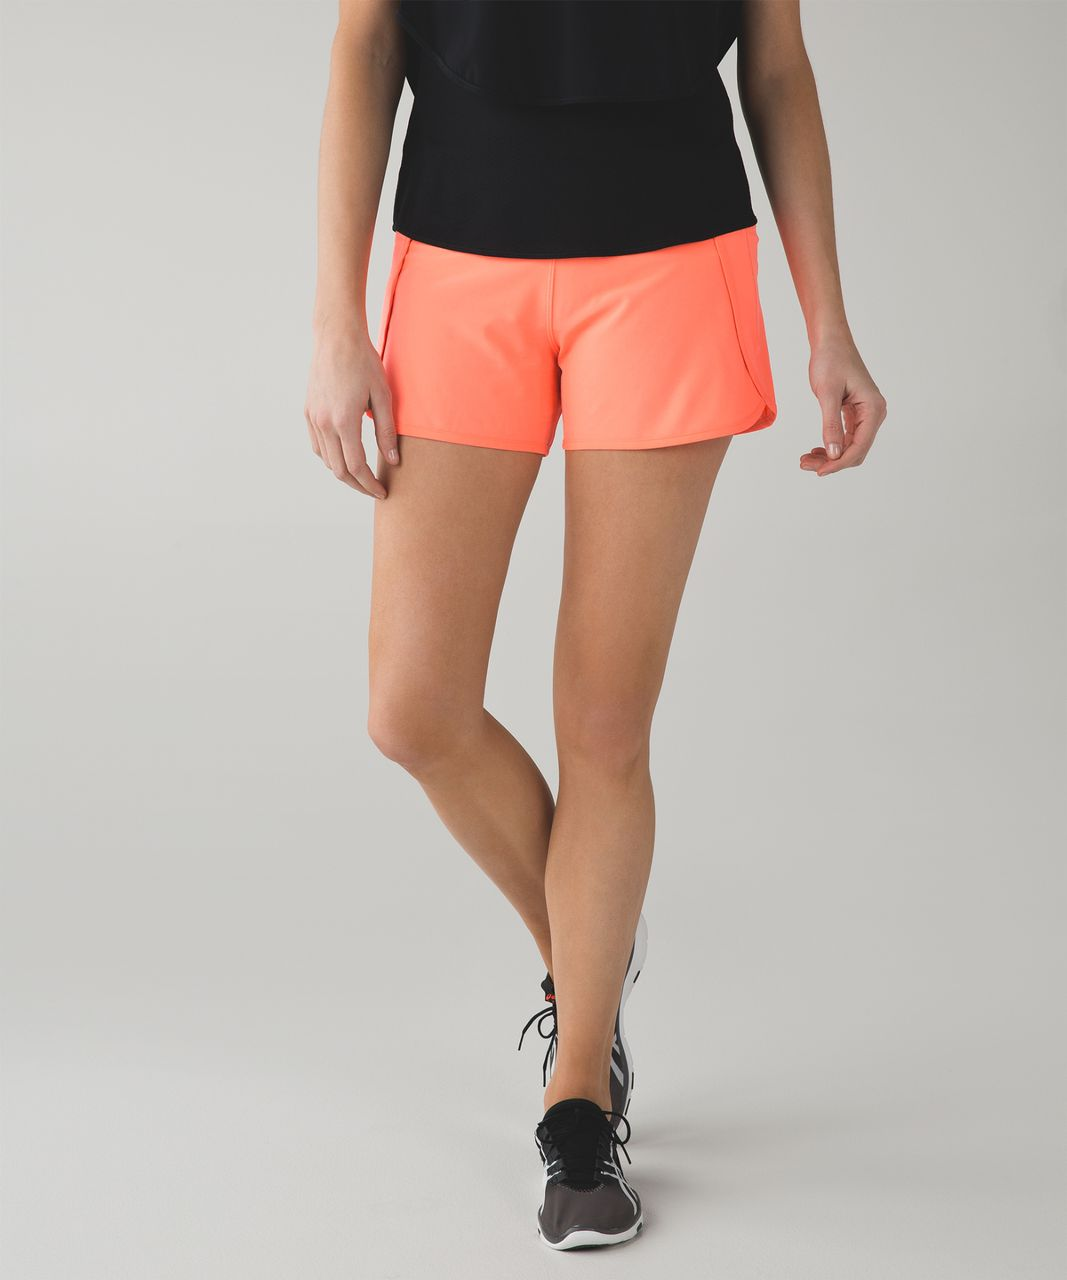 Lululemon Run Times Short *4-way Stretch - Very Light Flare